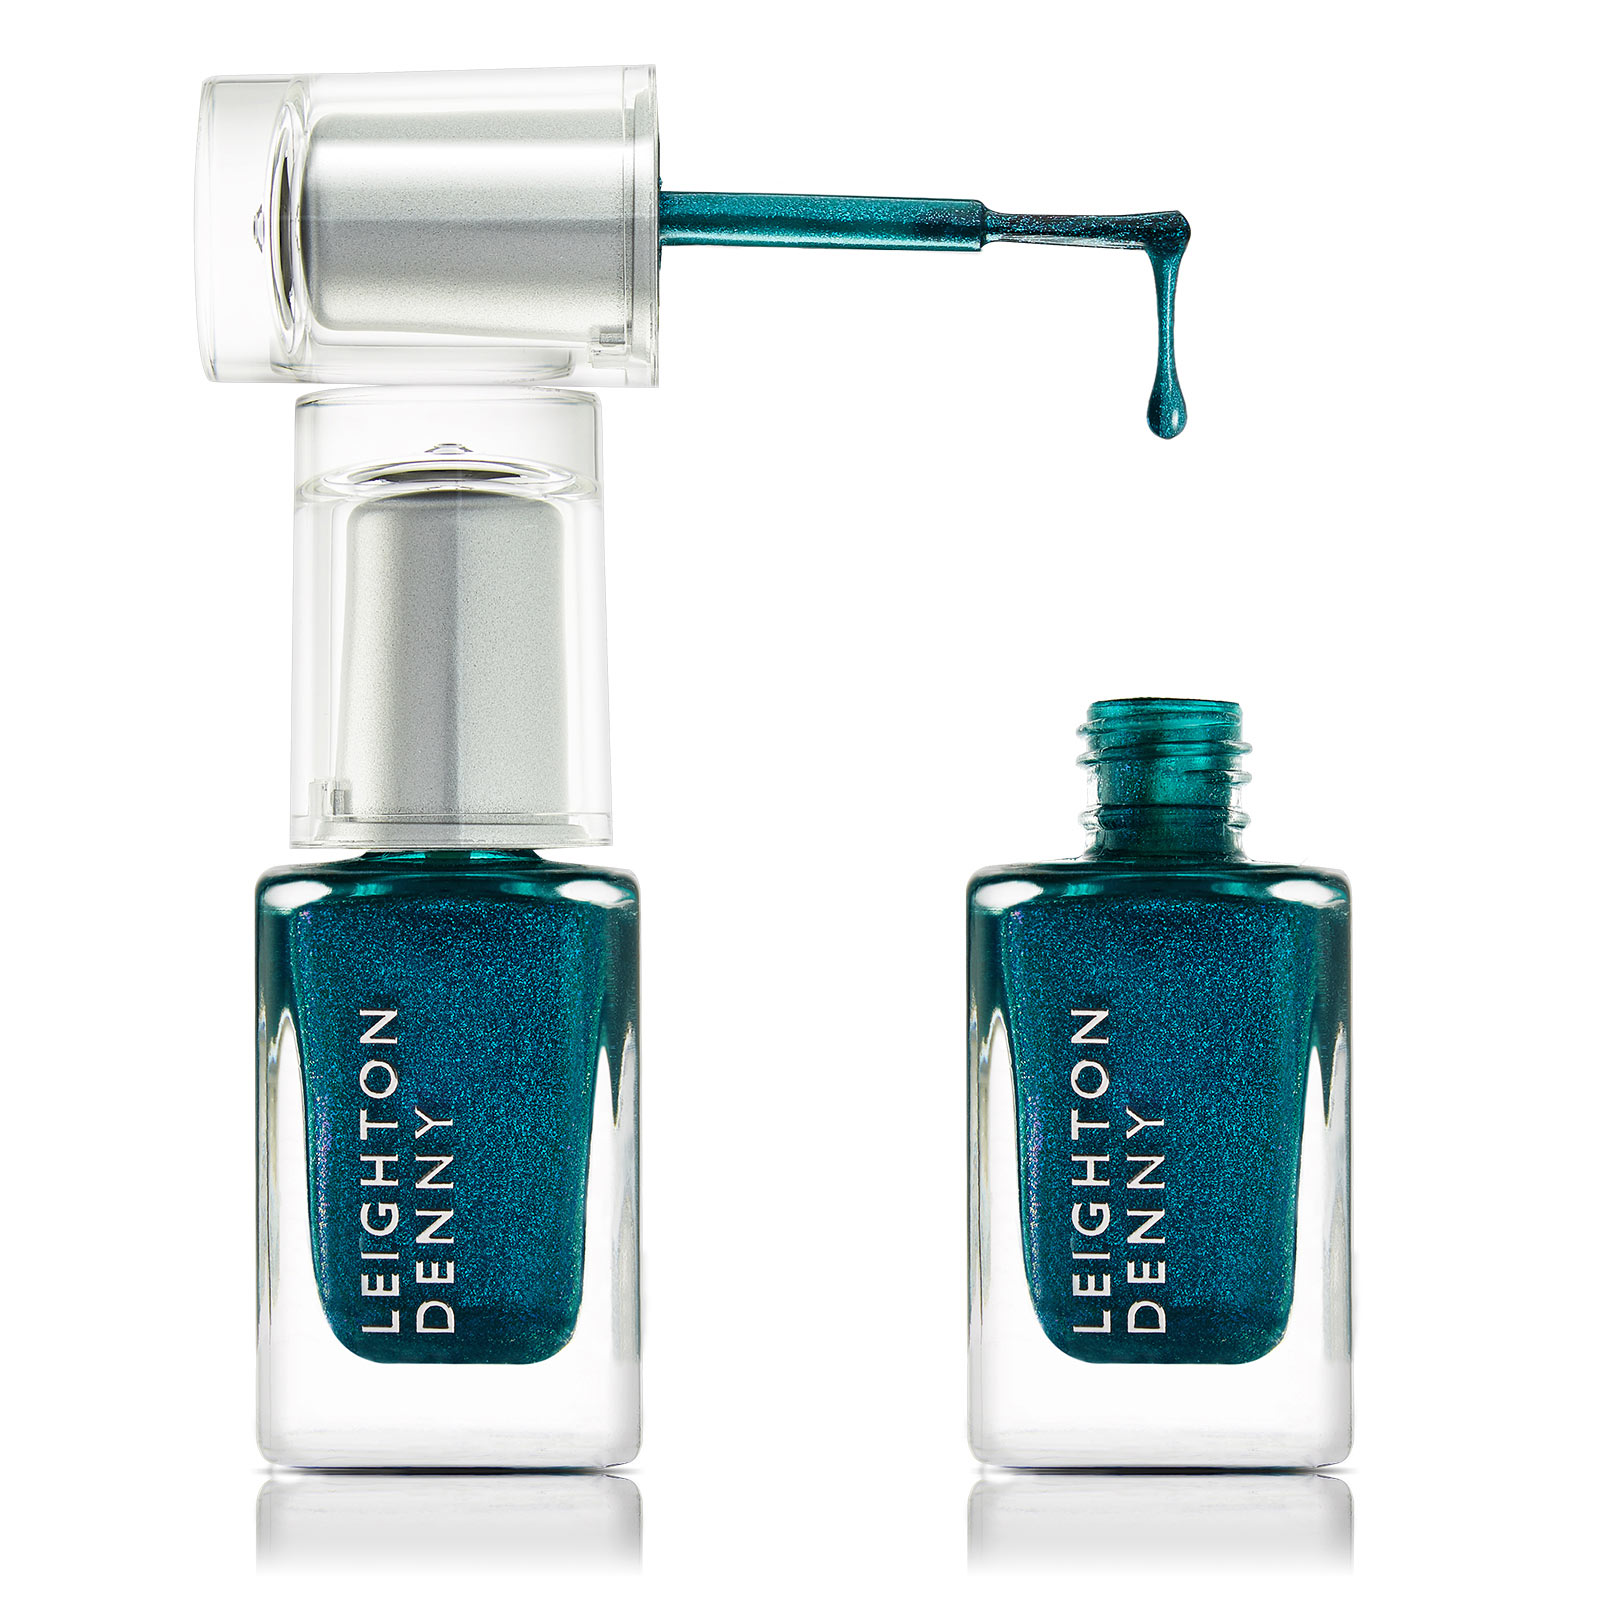 Product photography - green coloured nail varnish in bottles with brush dripping